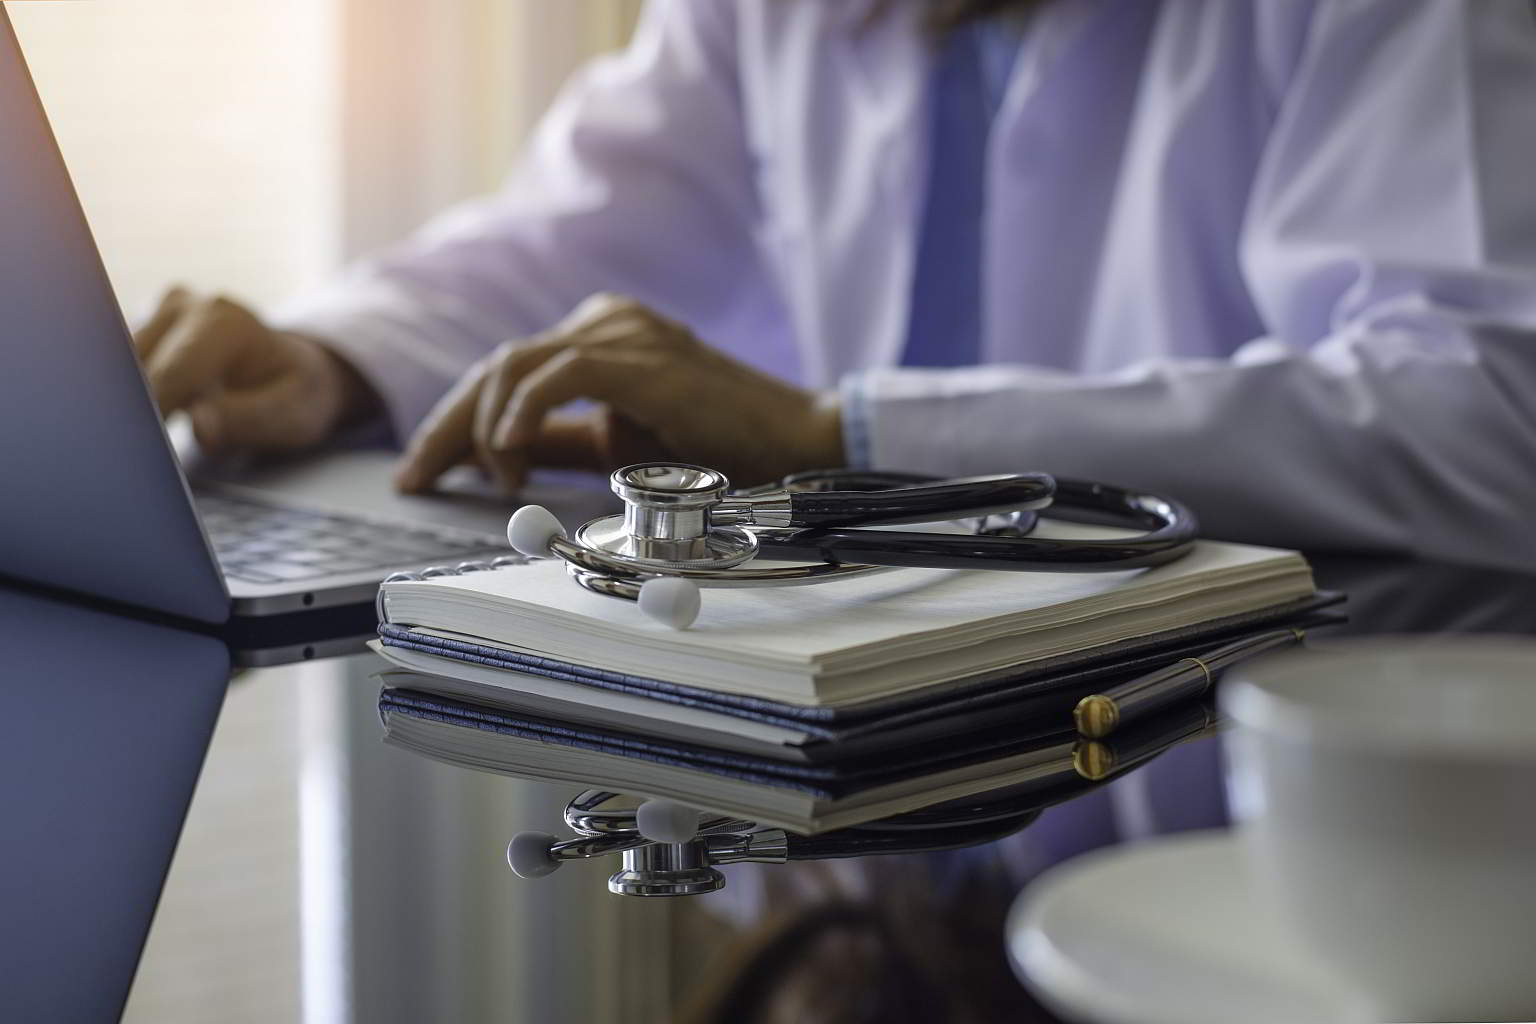 Rely on an expert for telehealth registered agent in Florida